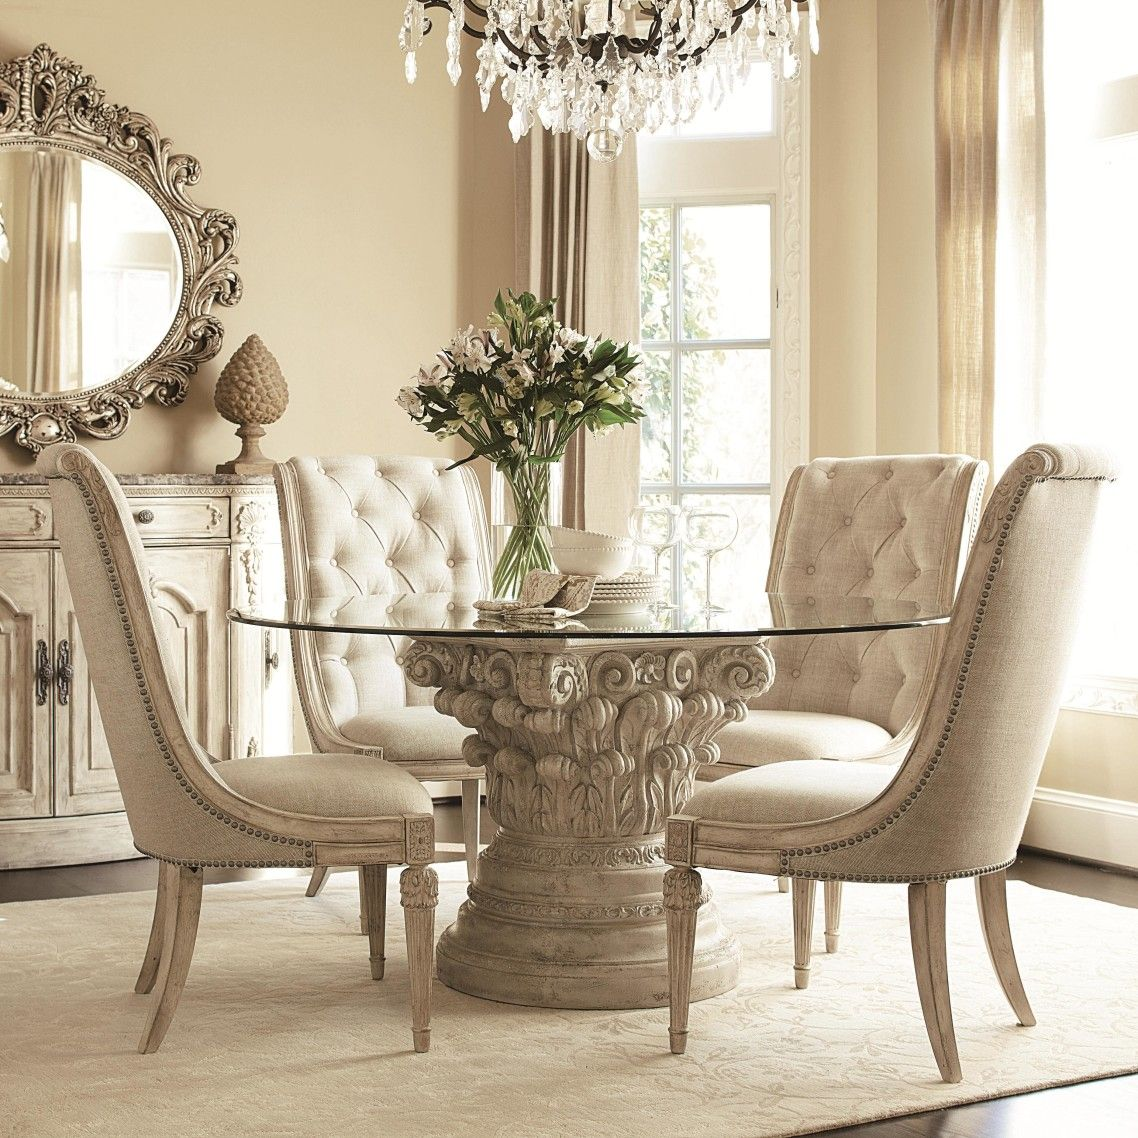 Awesome Classic Glass Dining Table With Artistic Hand Carved White